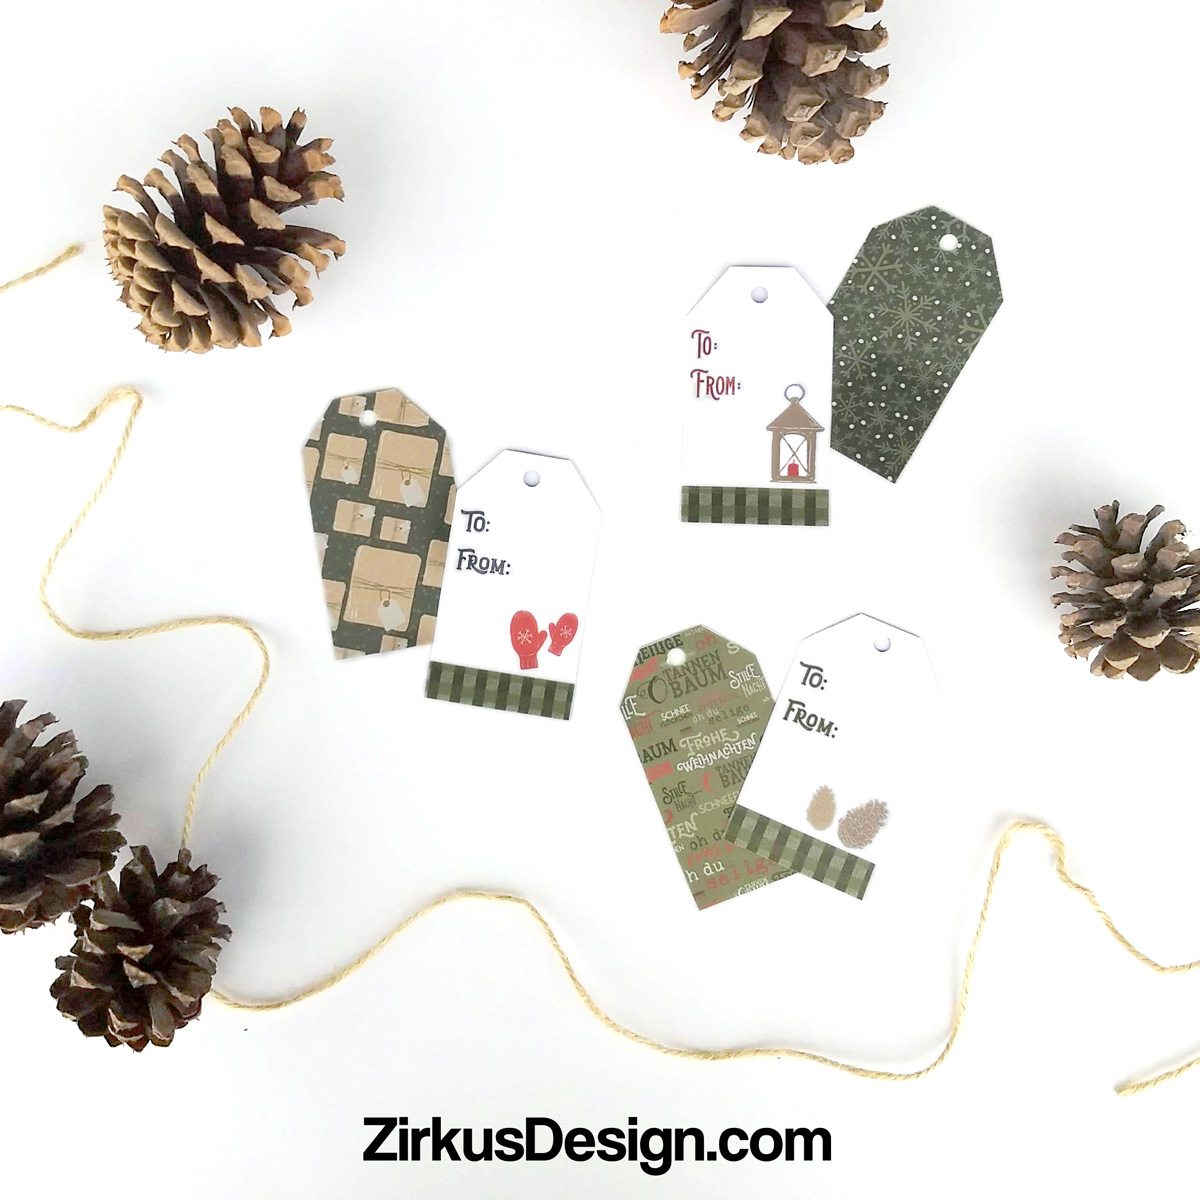 Zirkus Design | Warmest Wishes Farmhouse Christmas FREE Printable Gift Tags